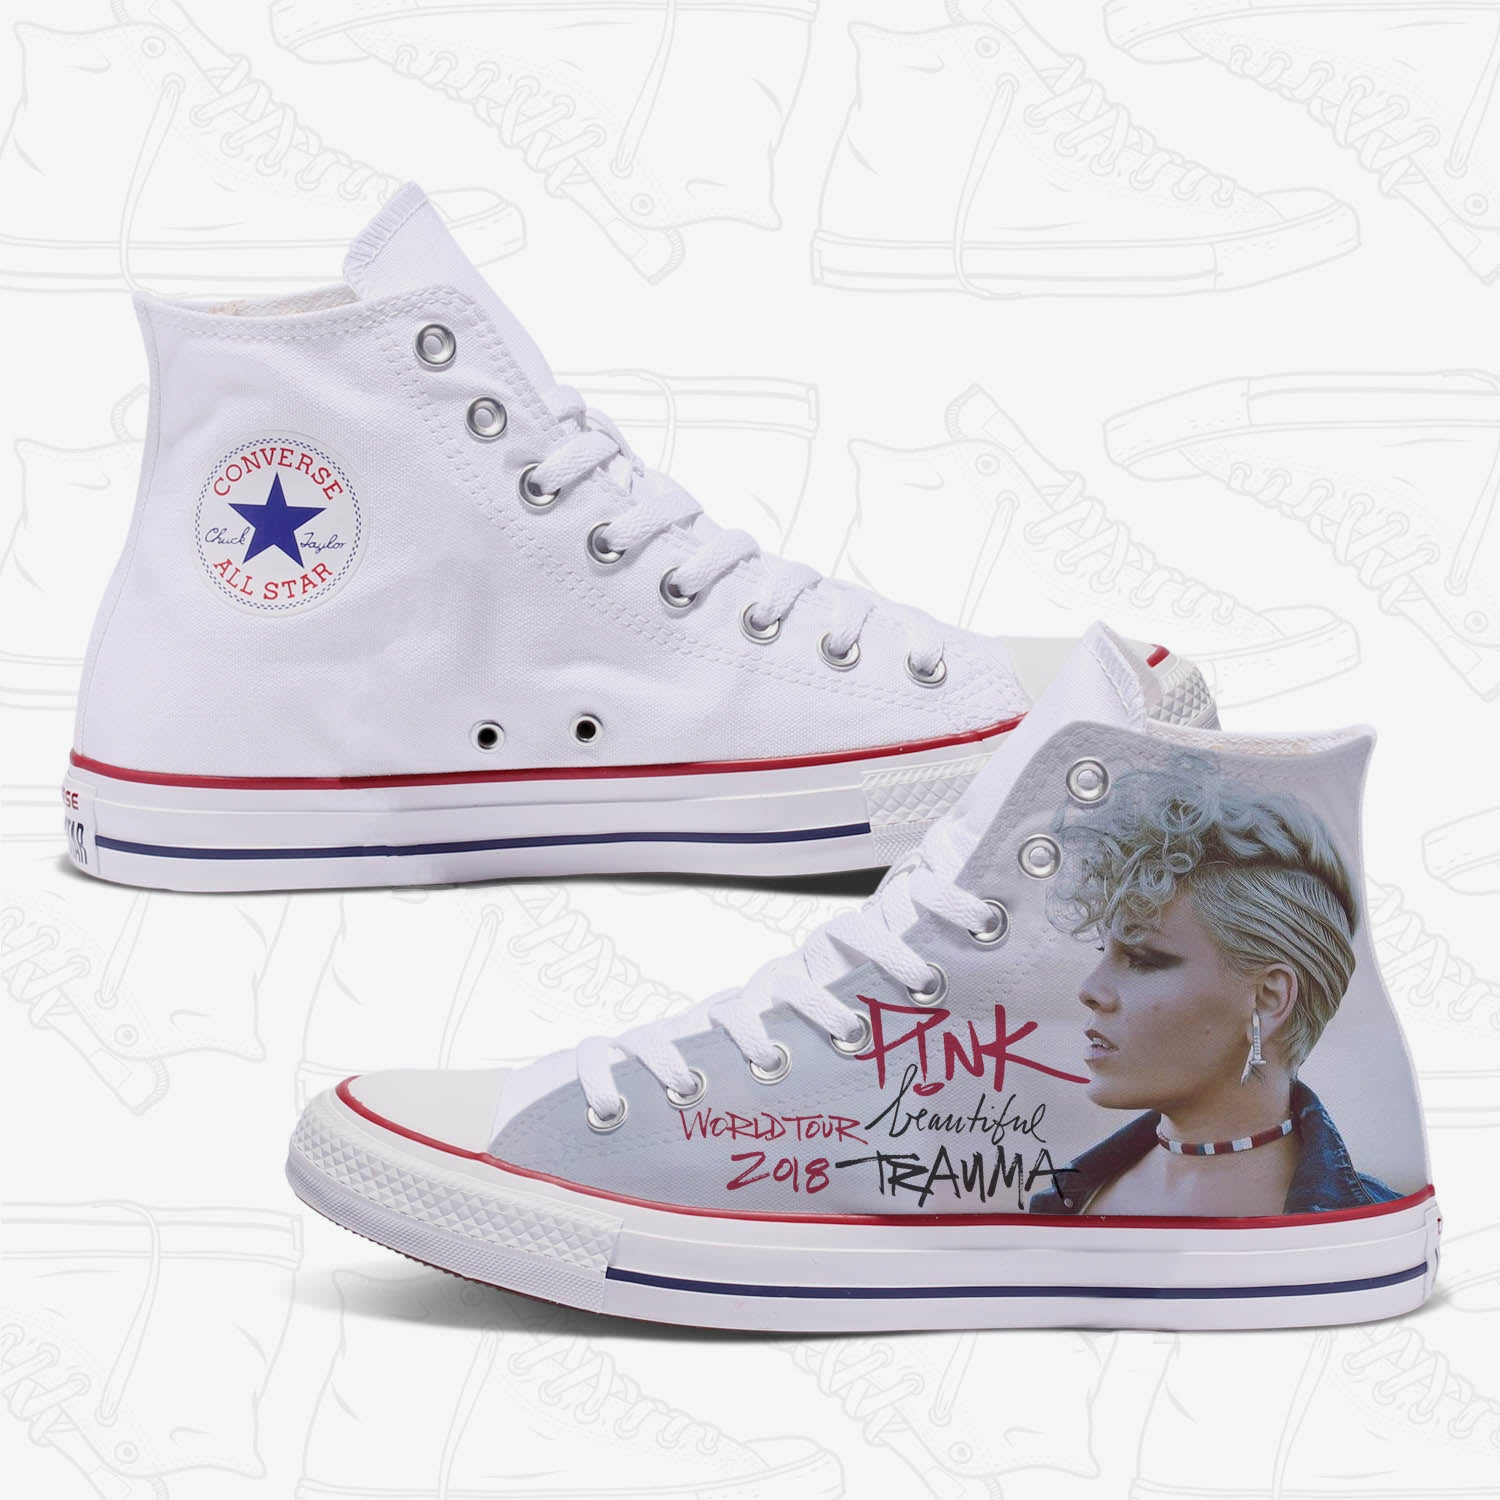 9cd1fa1a3af3 Womens Custom Shoes - Converse All Star Chuck Taylors